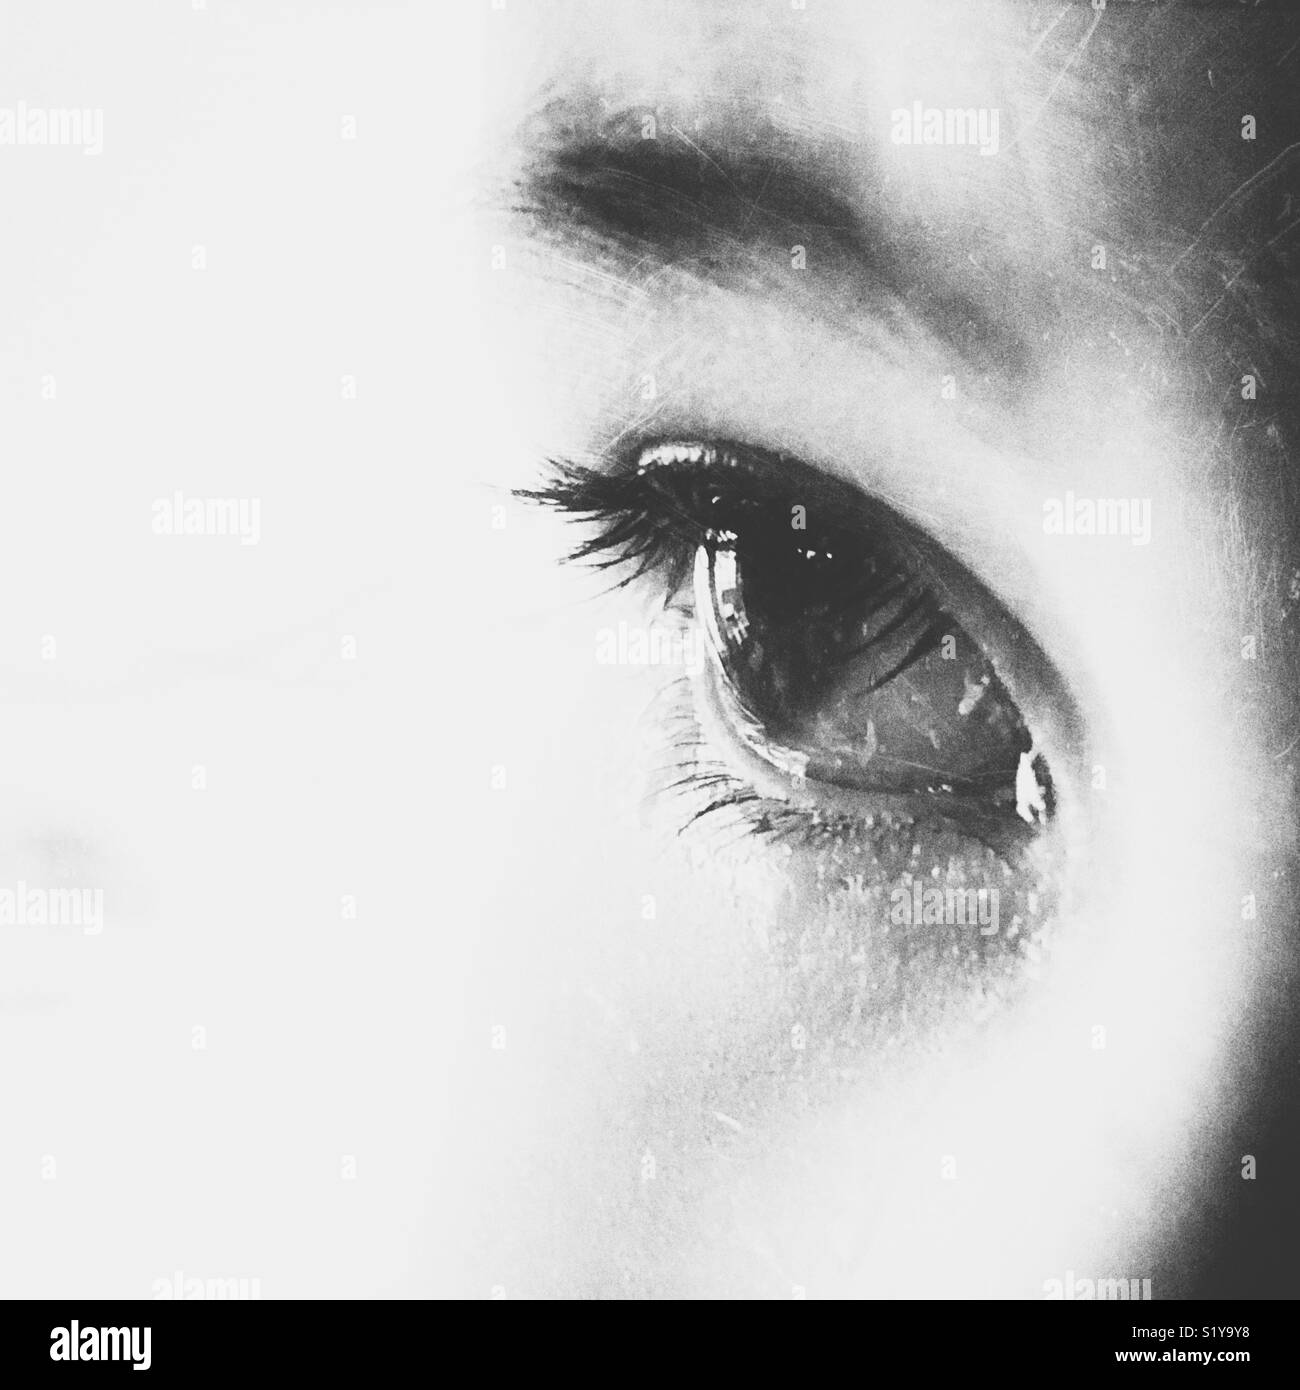 Black and white close up of teary child's eye - Stock Image